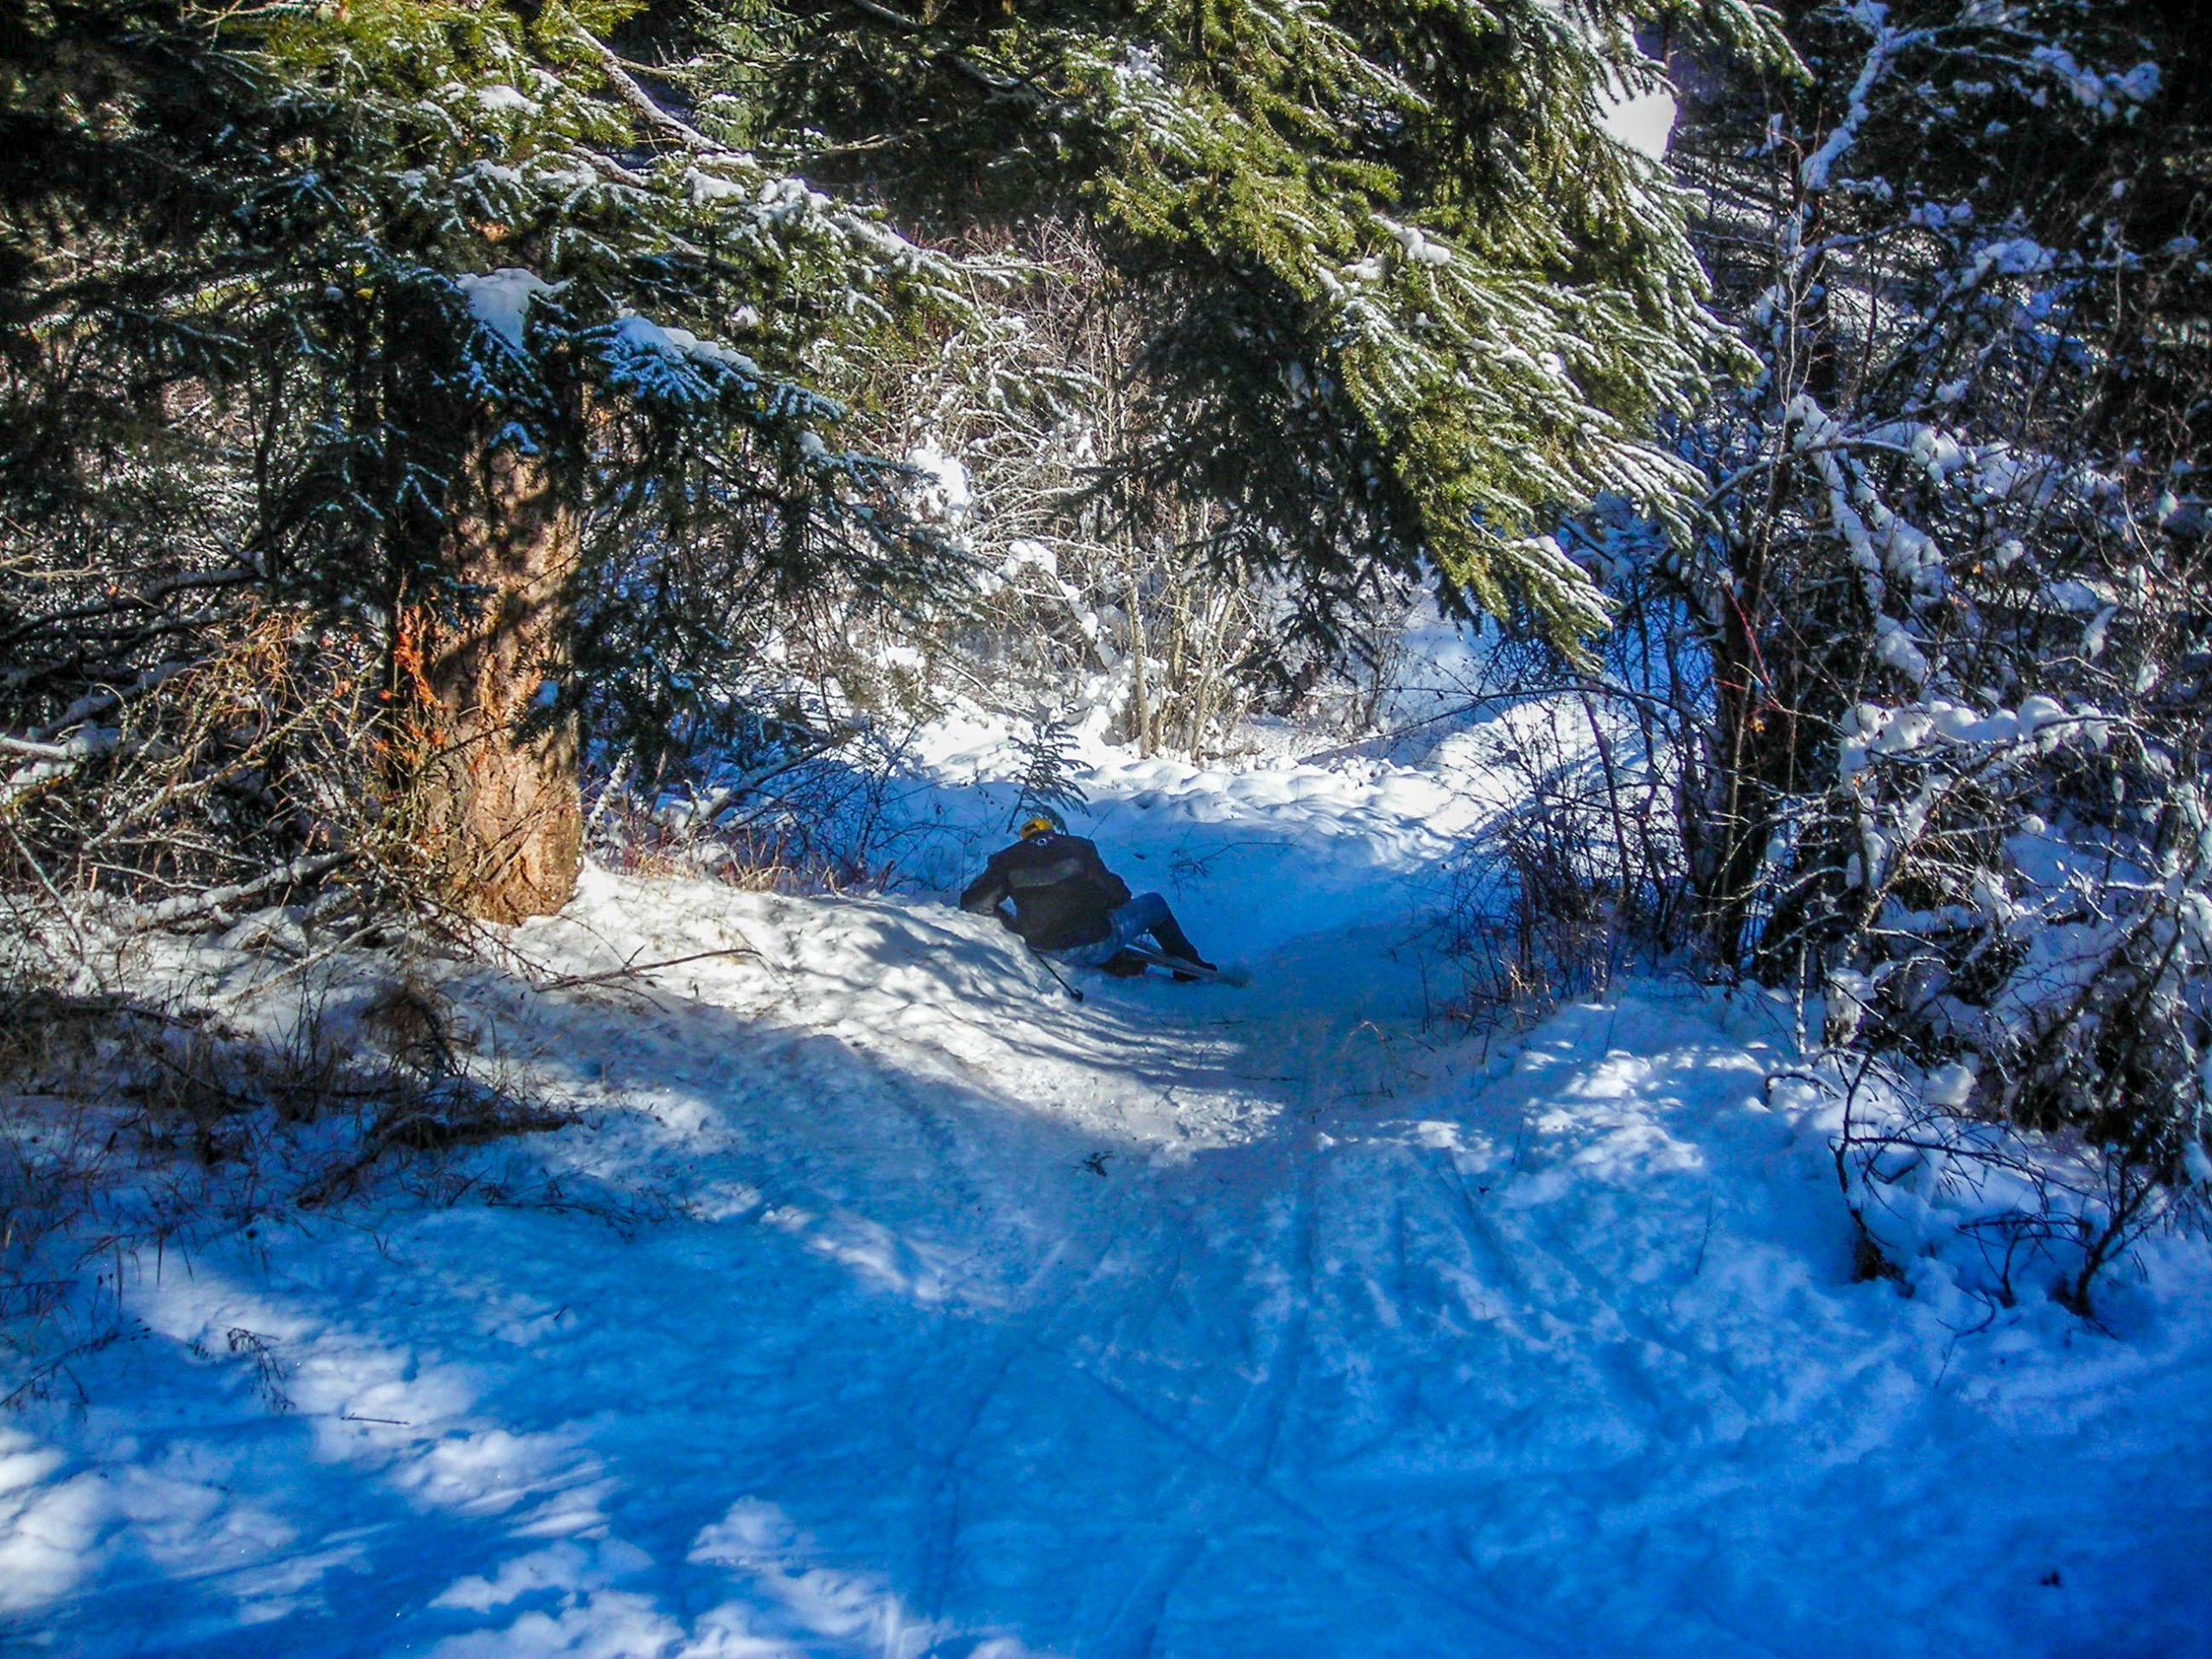 Cross-Country Skiing in the Rattlesnake